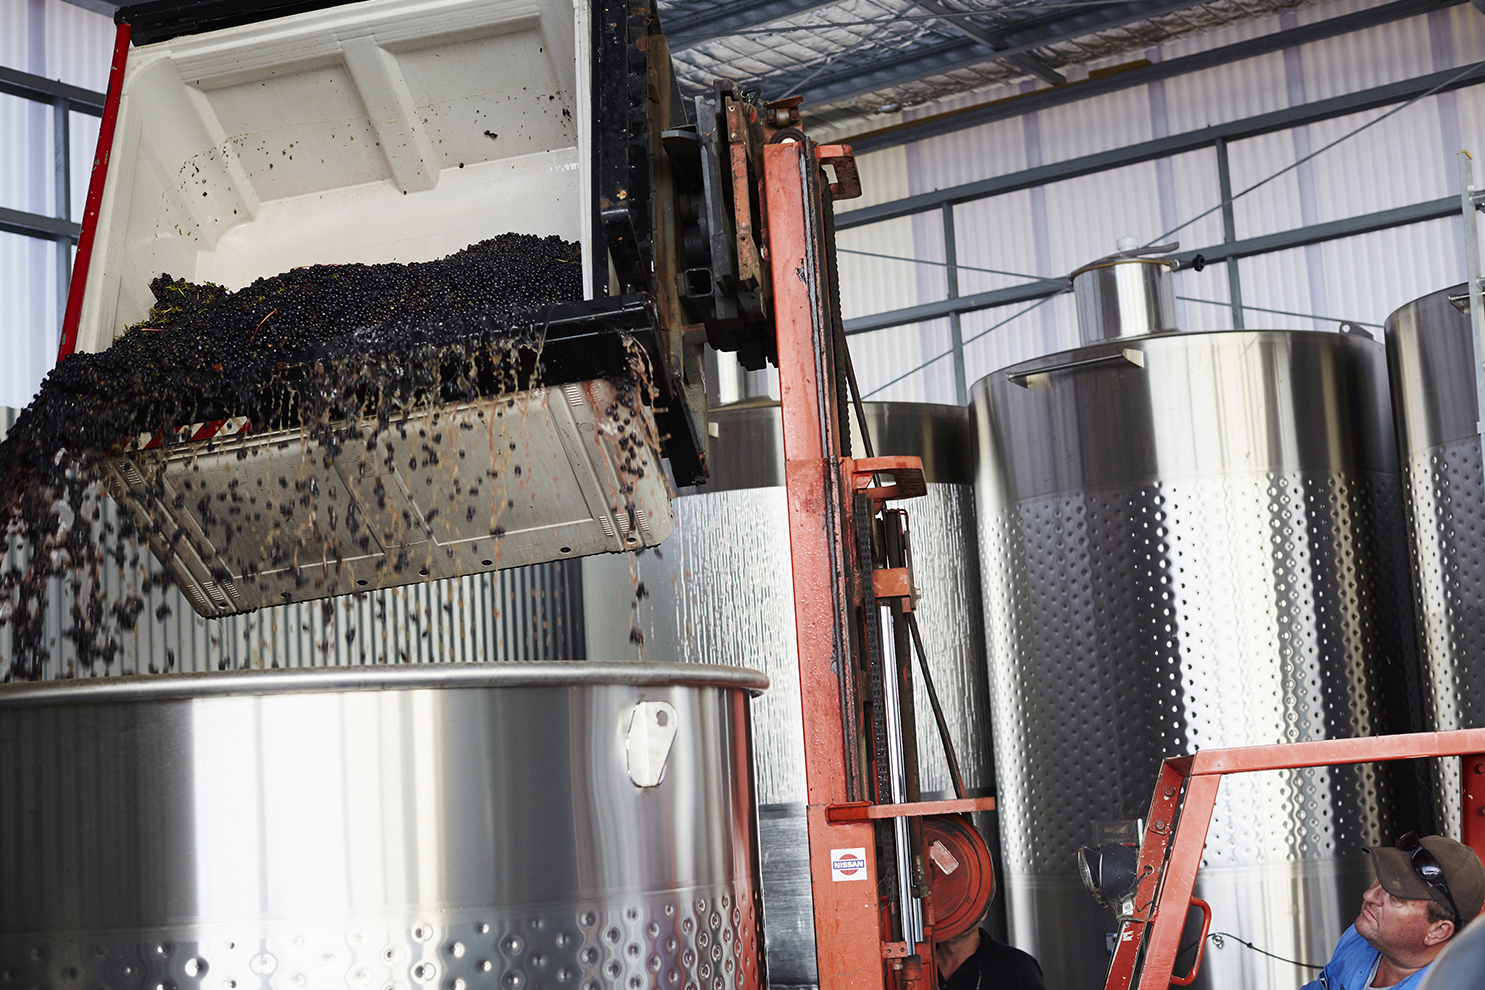 Gently tipping the fruit into the fermenter where is will stay for approximately 5 days